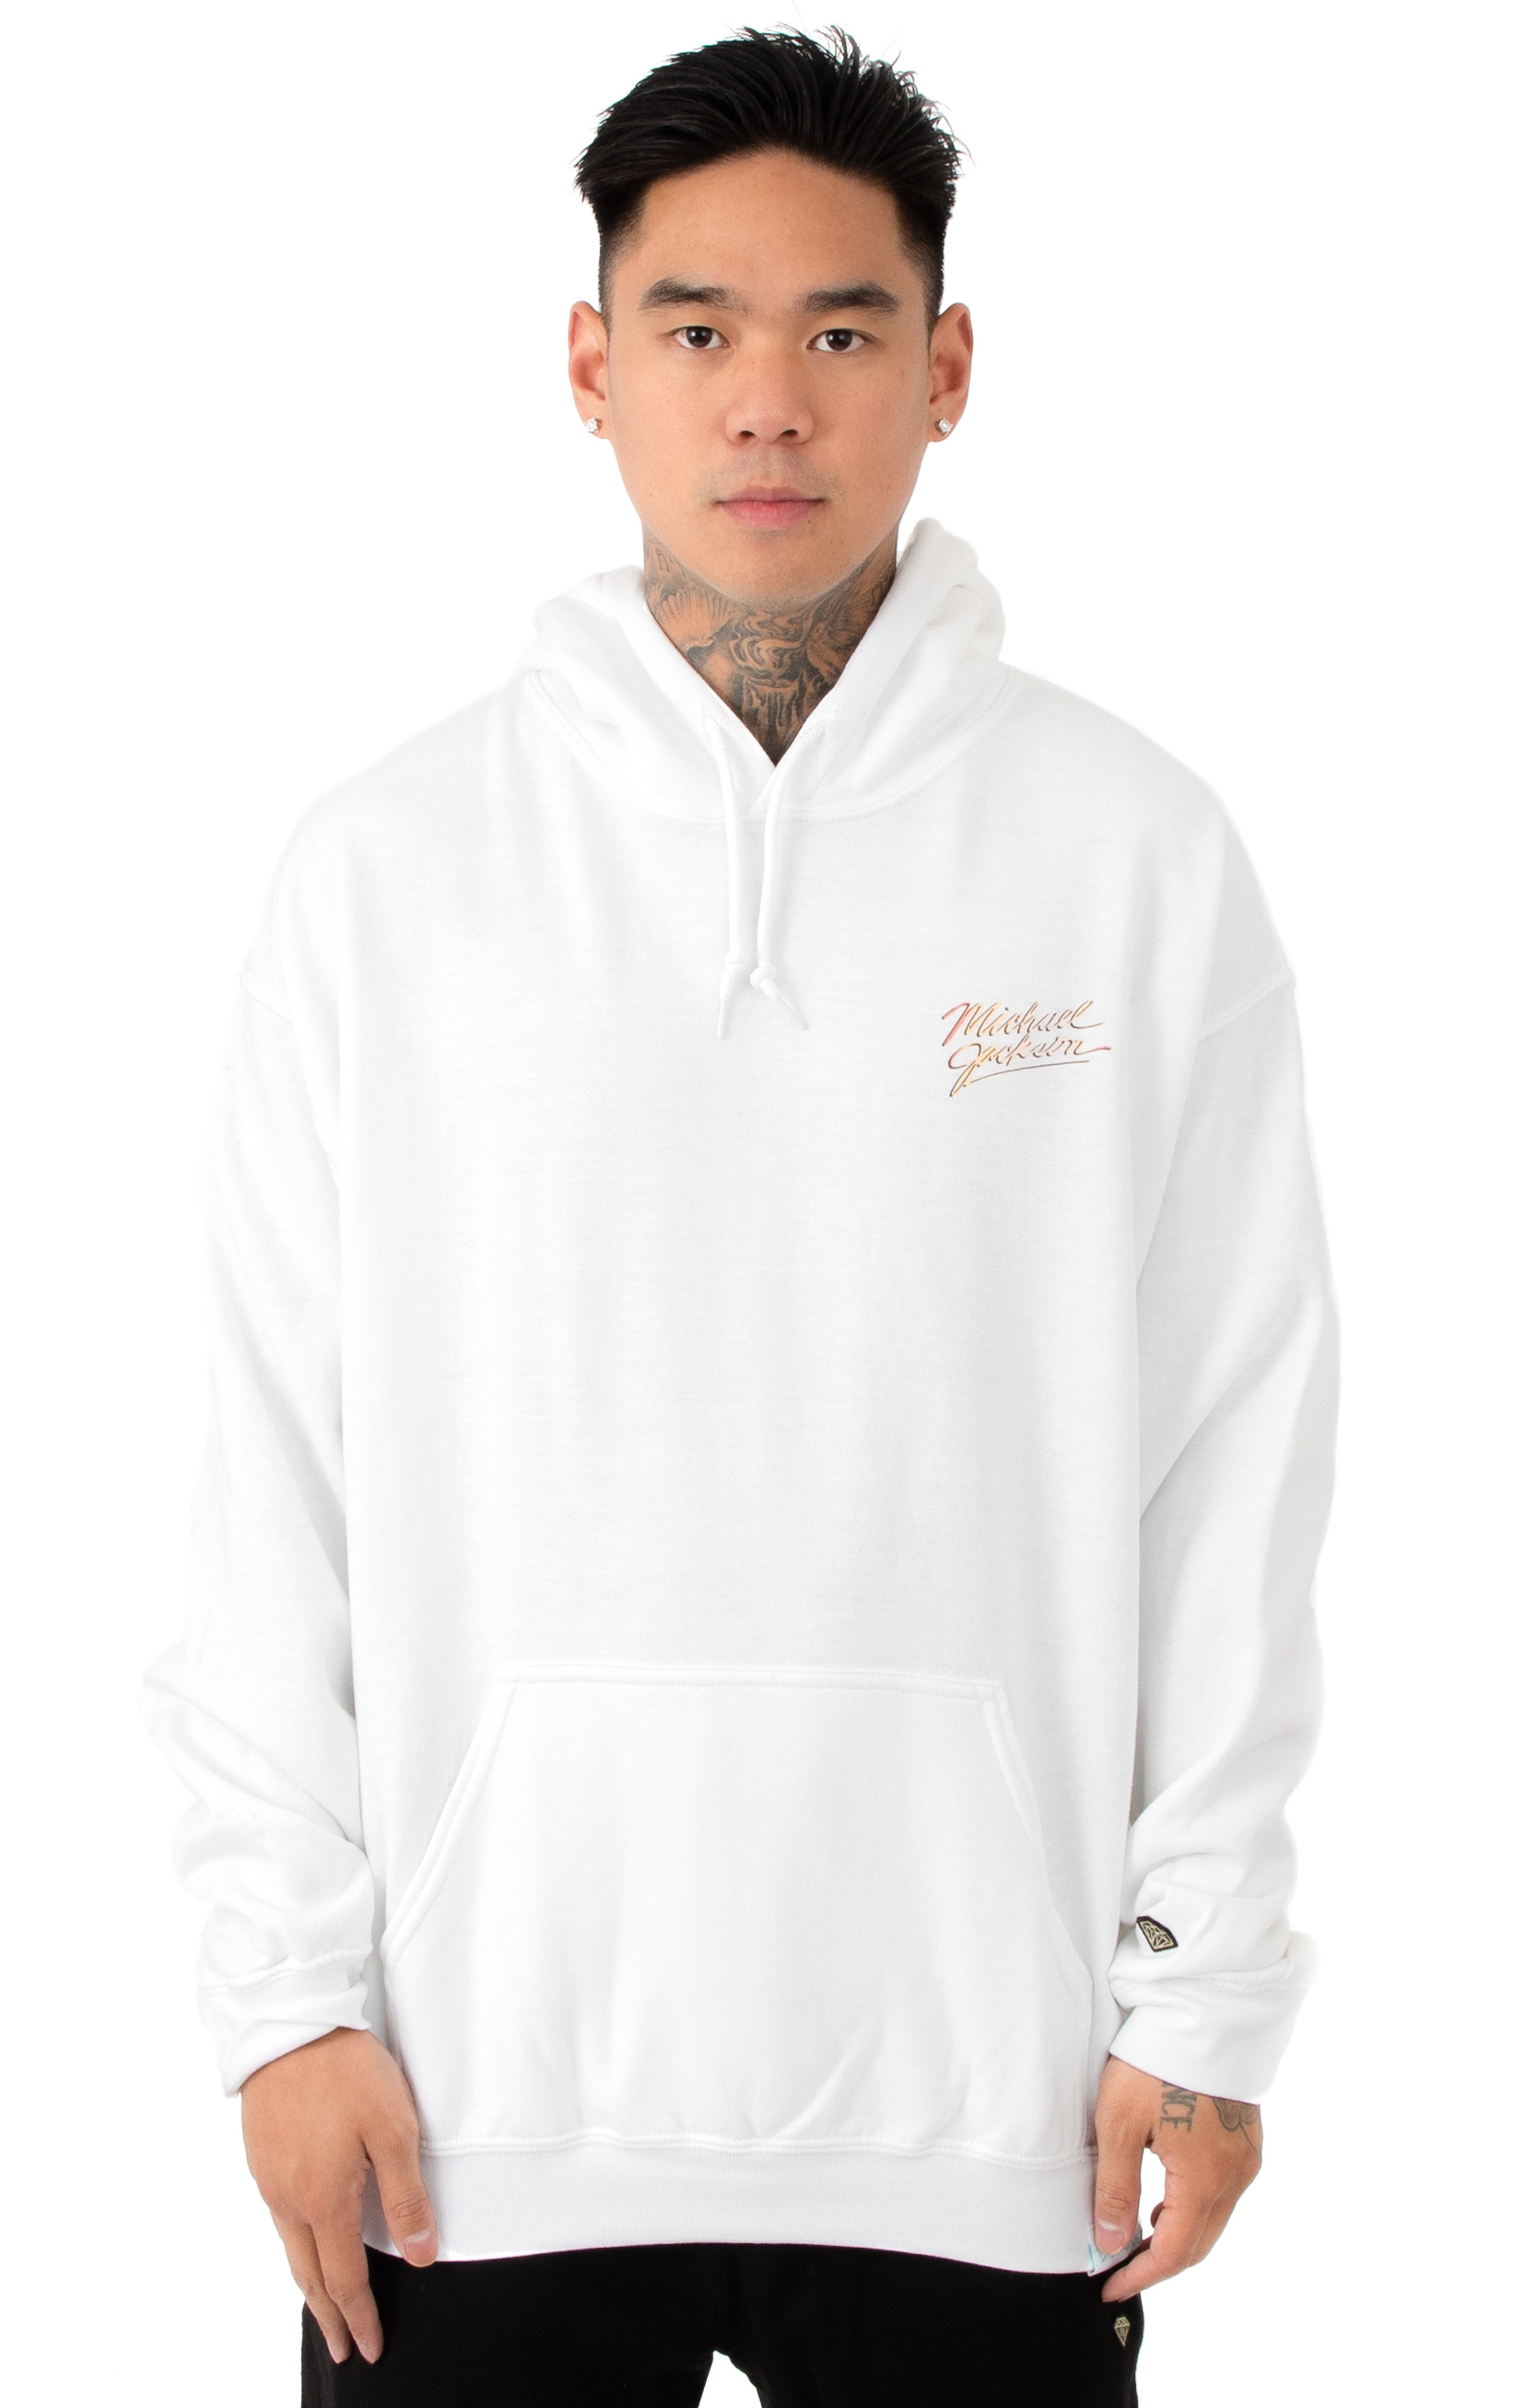 Michael Jackson Pullover Hoodie - White